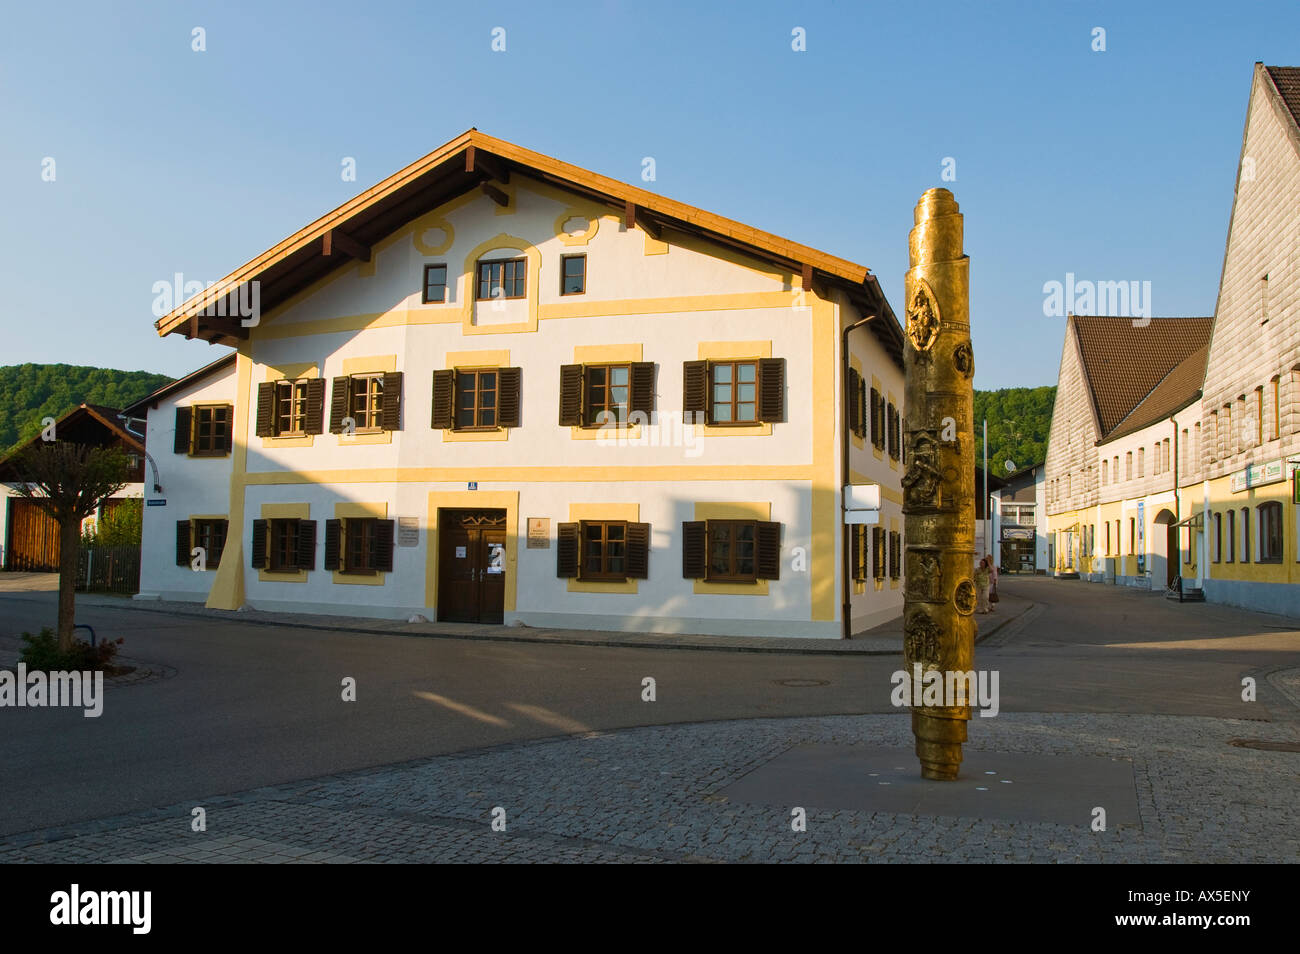 Birthplace Of Pope Benedict Xvi Marktl Am Inn Bavaria Germany